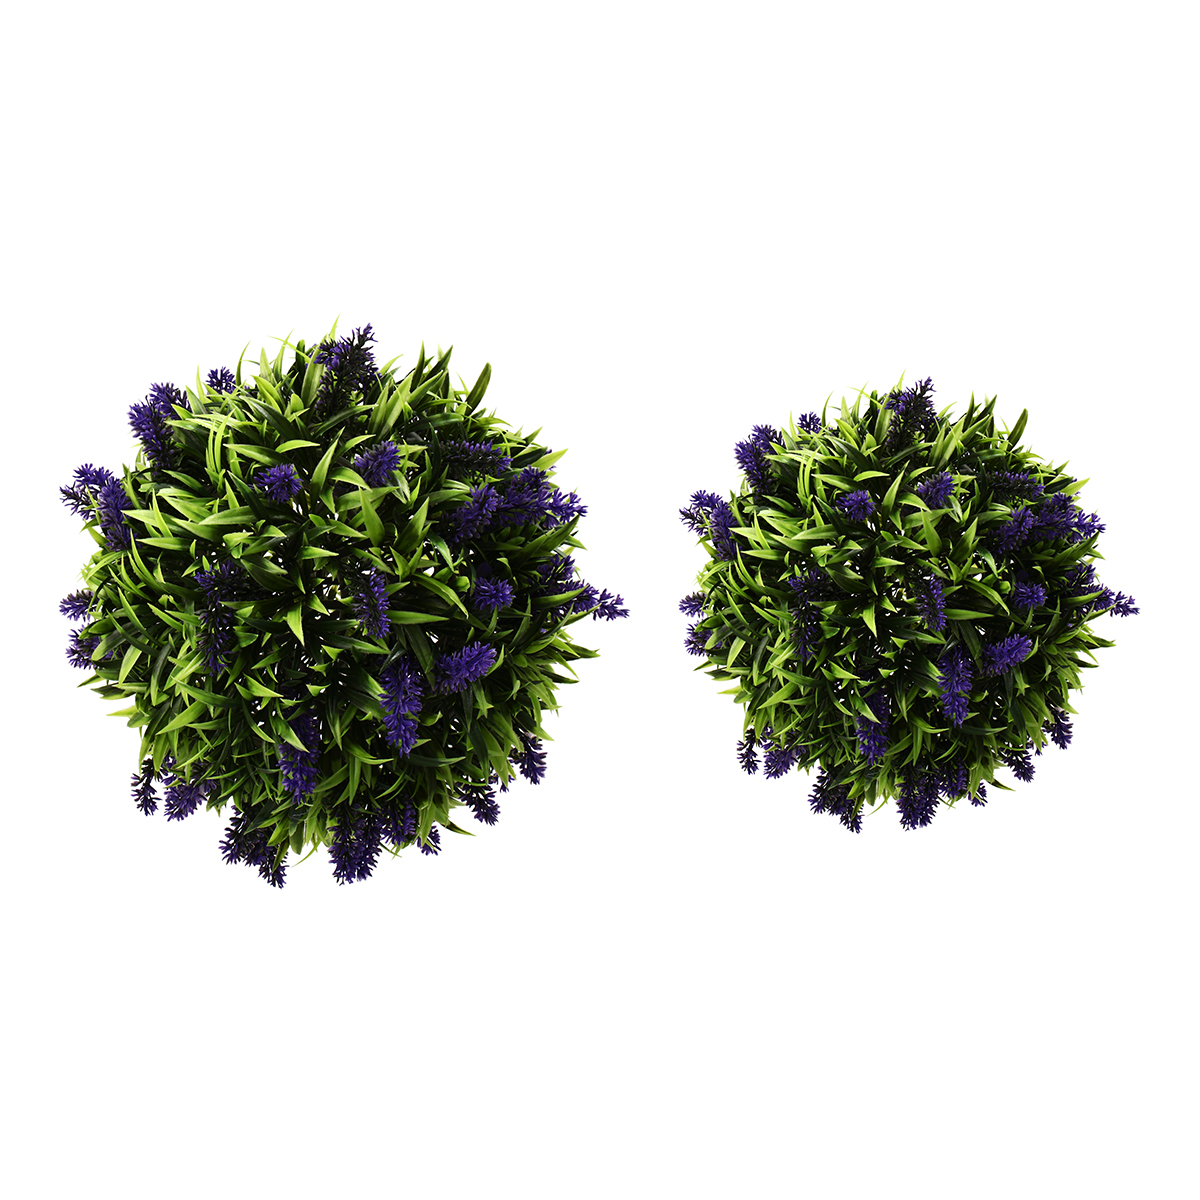 Moaere Artificial Flowers Realistic Fake Ball Simulation Lavender Topiary Plant for Home Wedding Baby Shower Birthday Party Dec